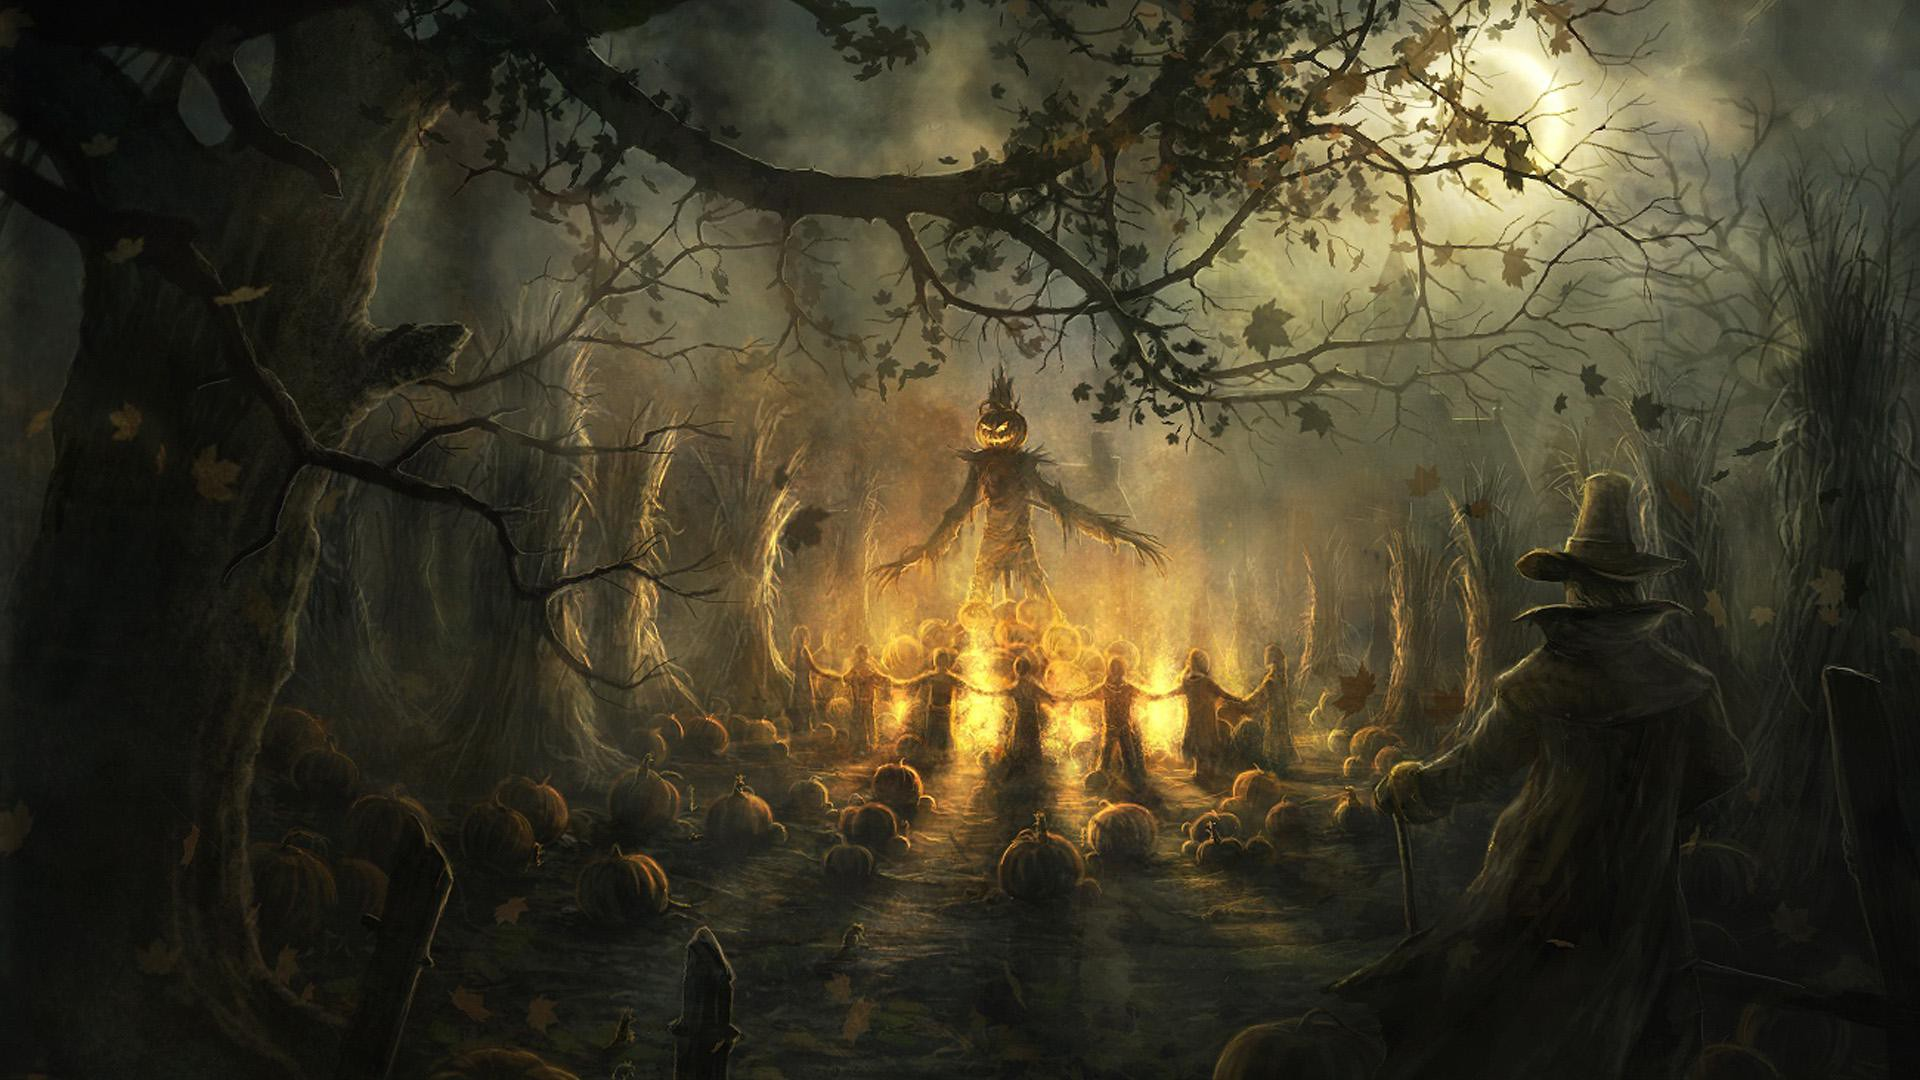 Cool Naruto Wallpapers Hd Download Halloween Wallpapers In 2k And Full Hd